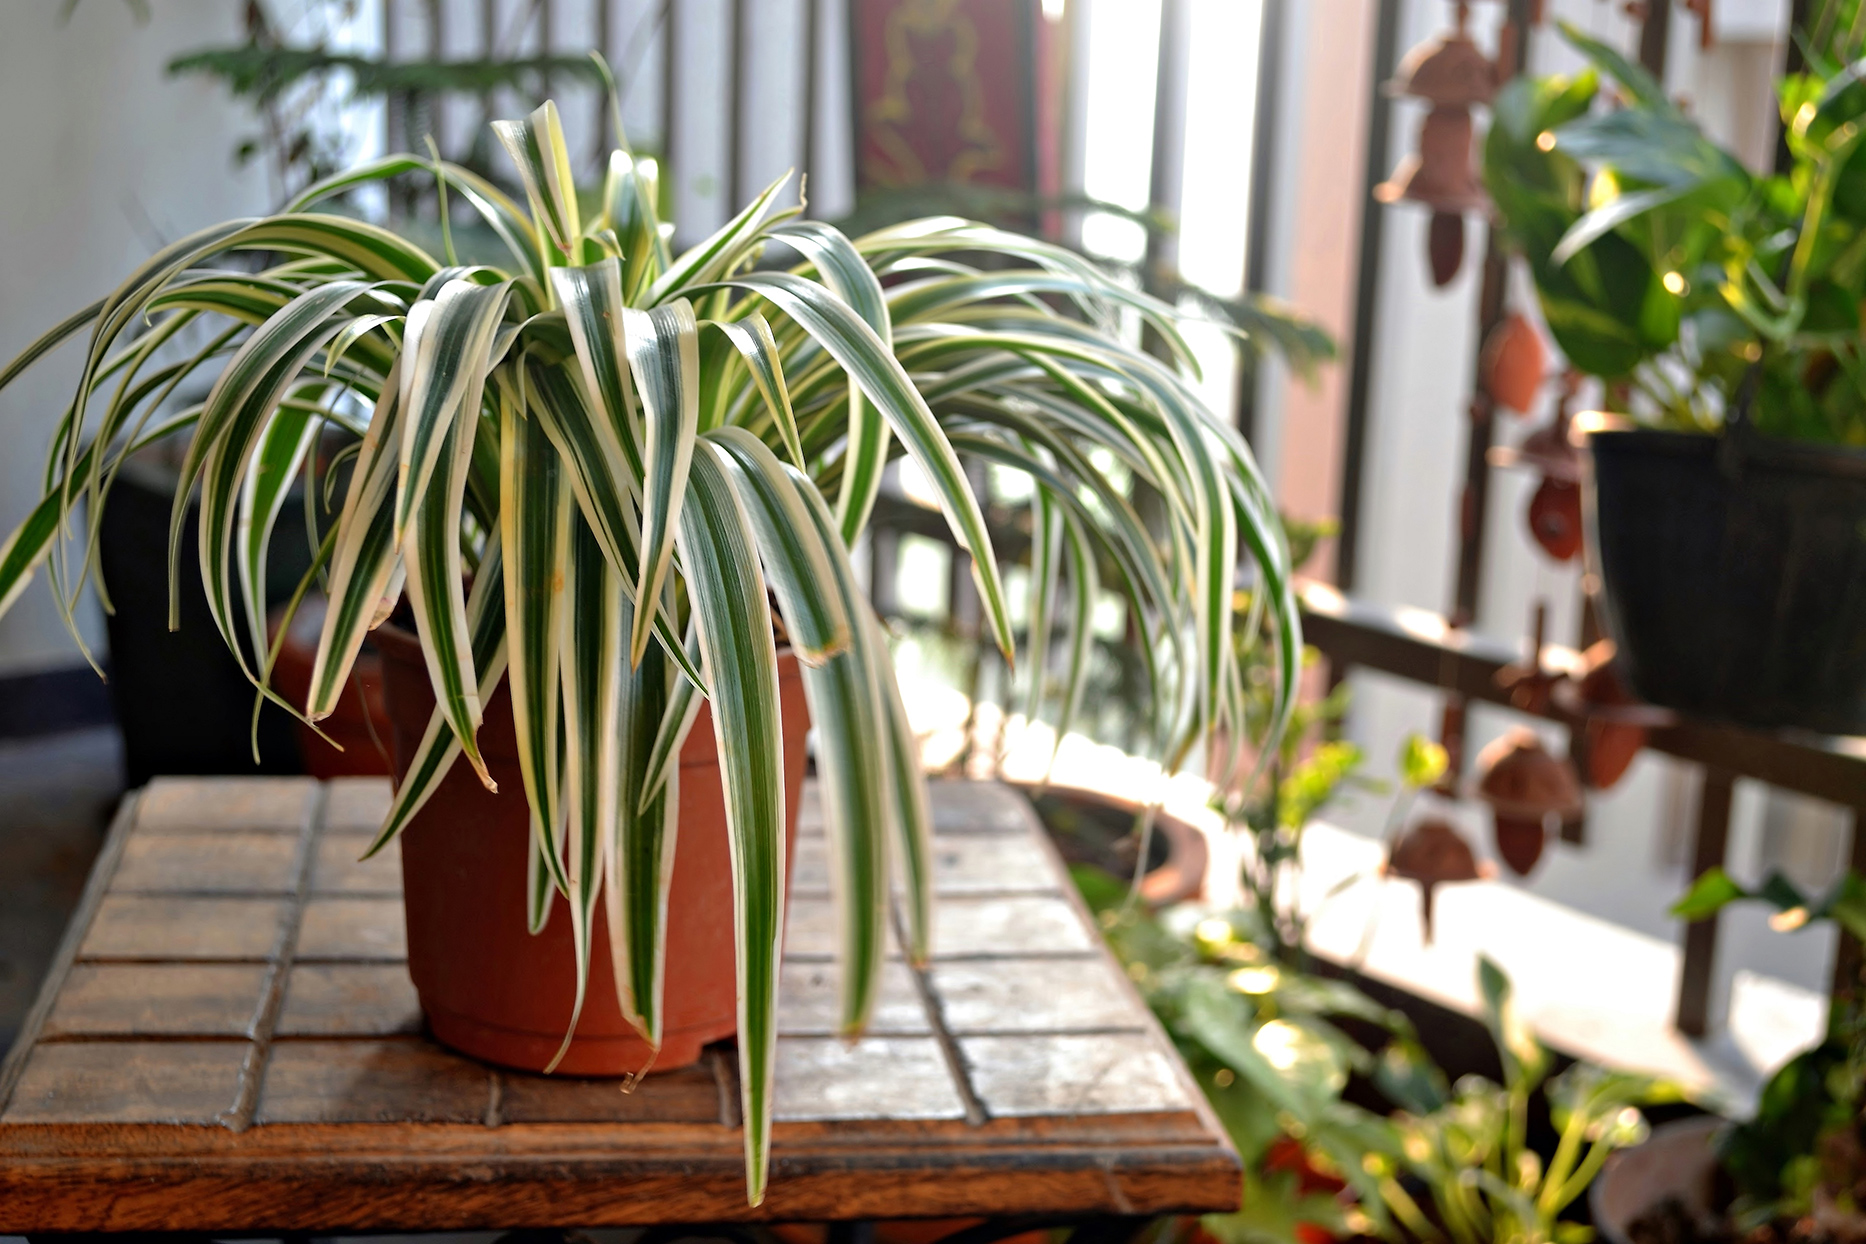 Spider Plant on wooden table